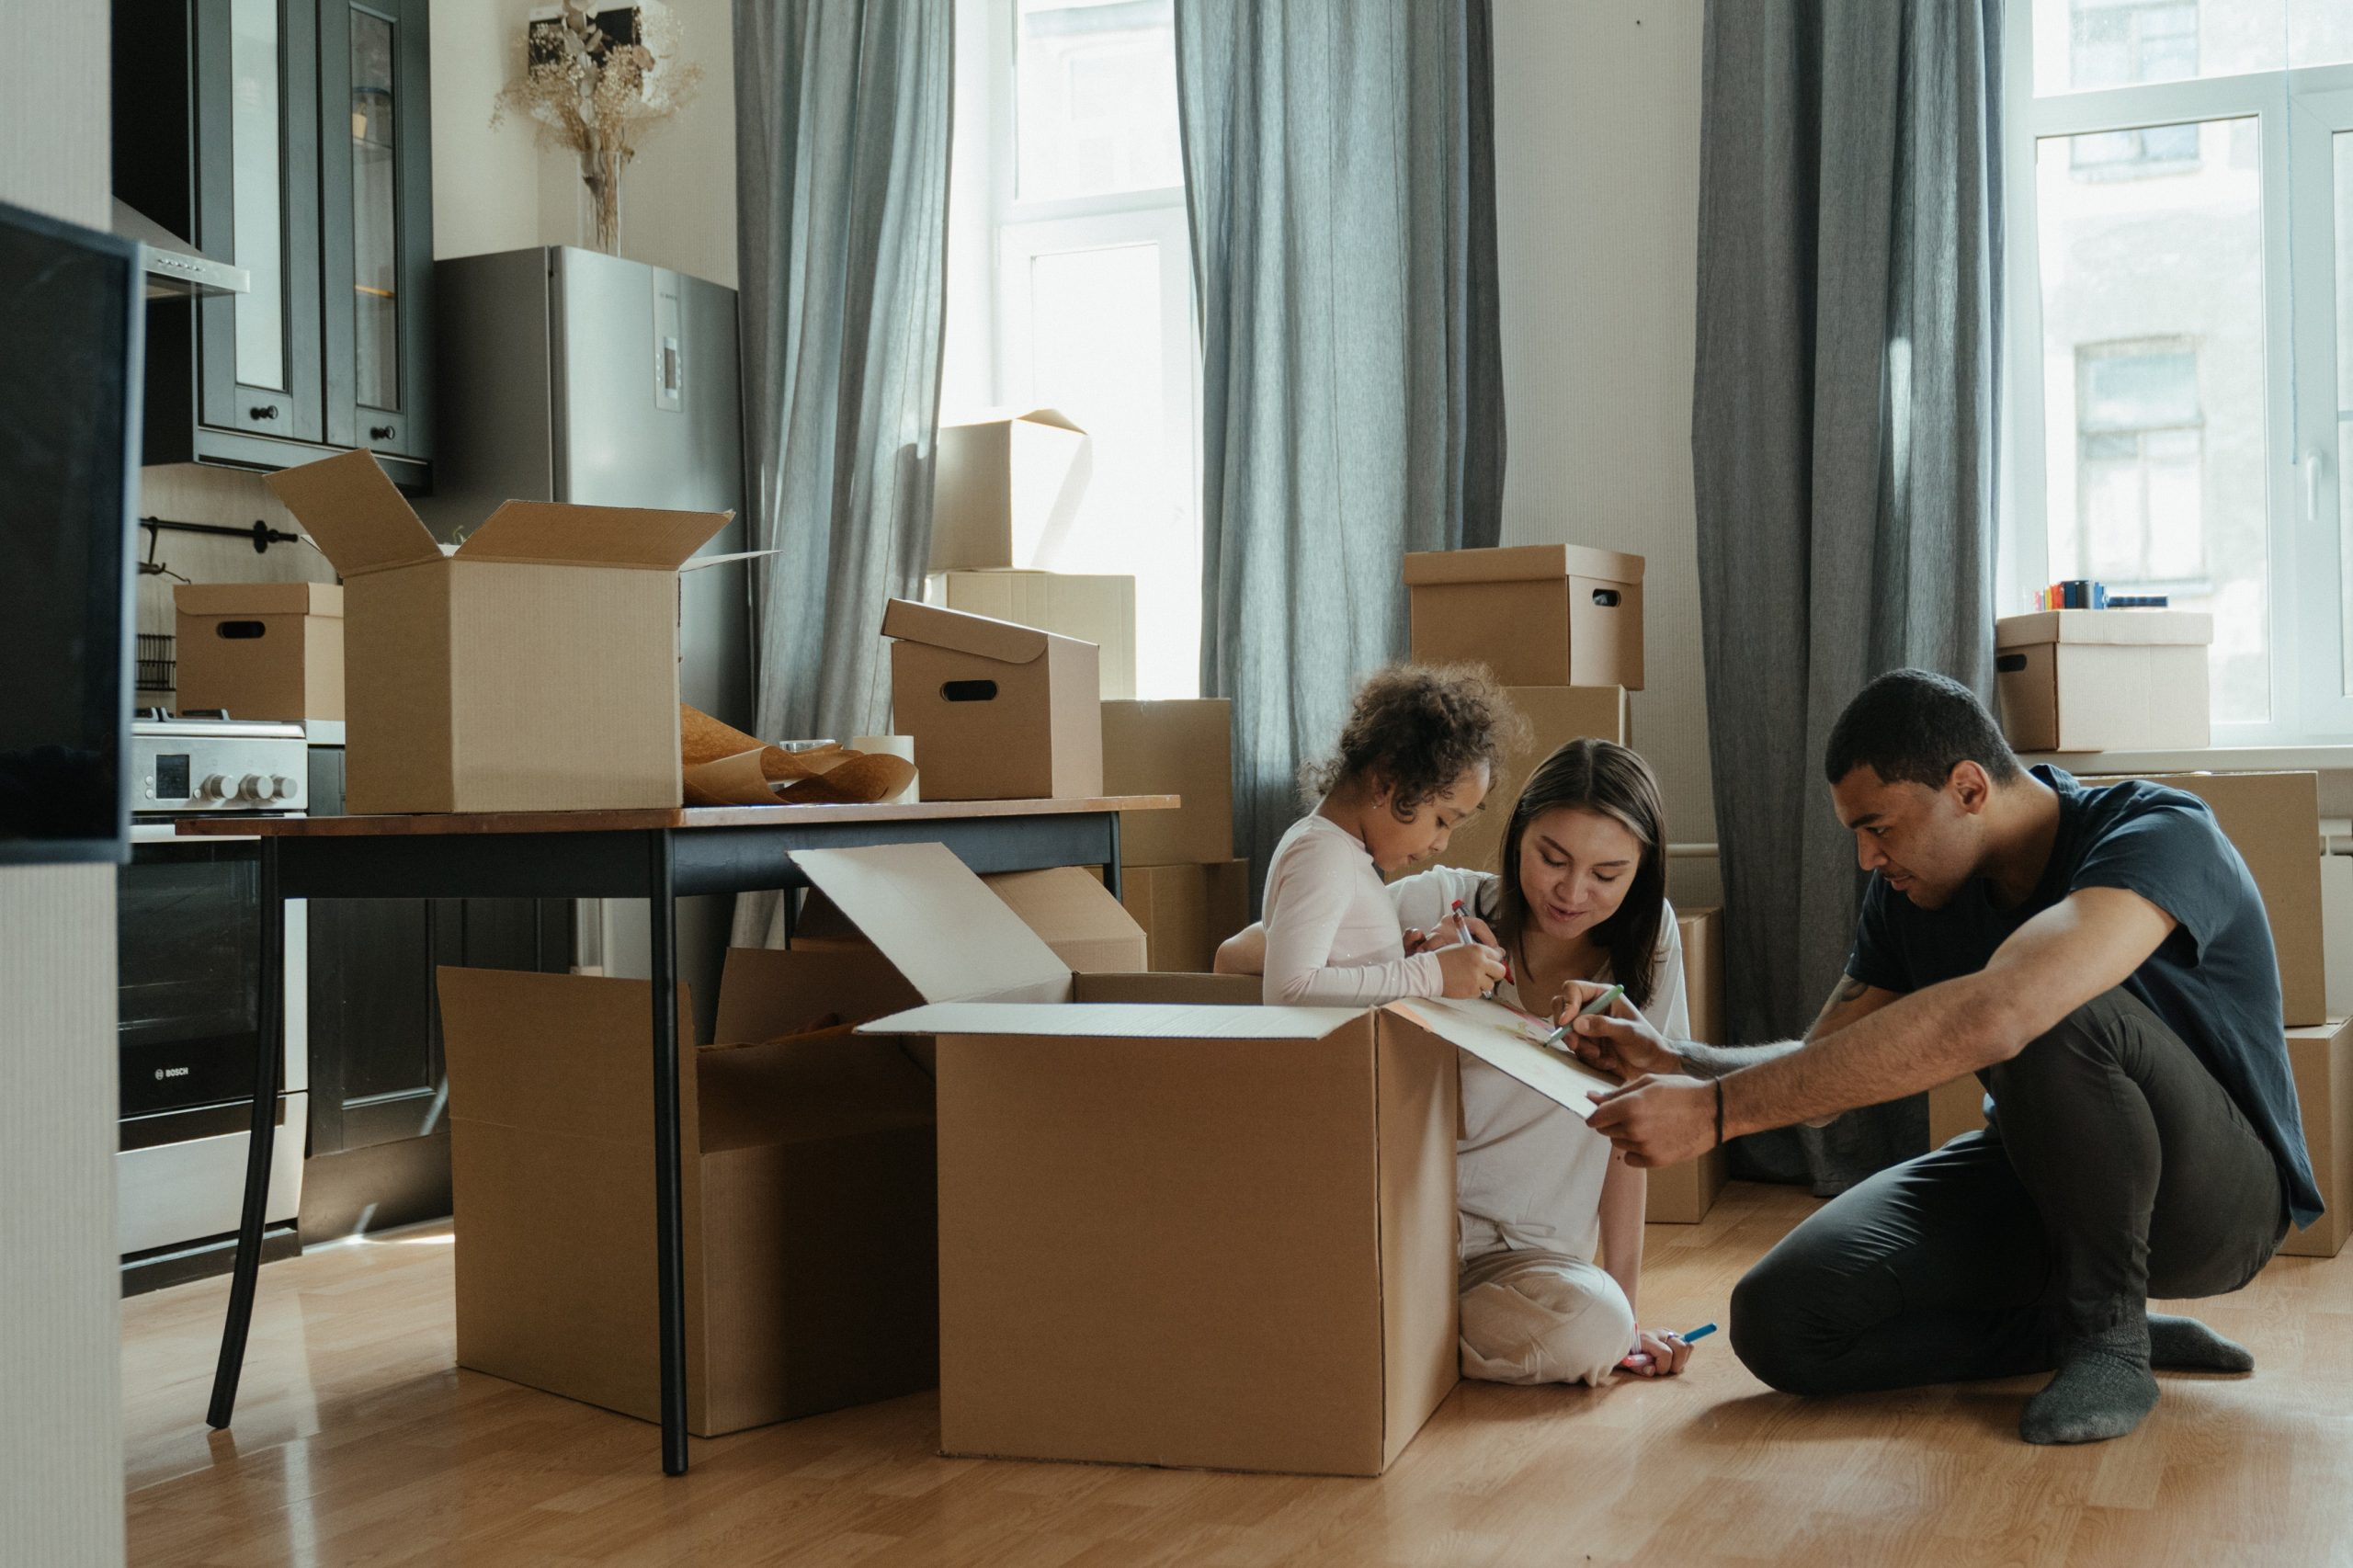 What services does a moving company offer